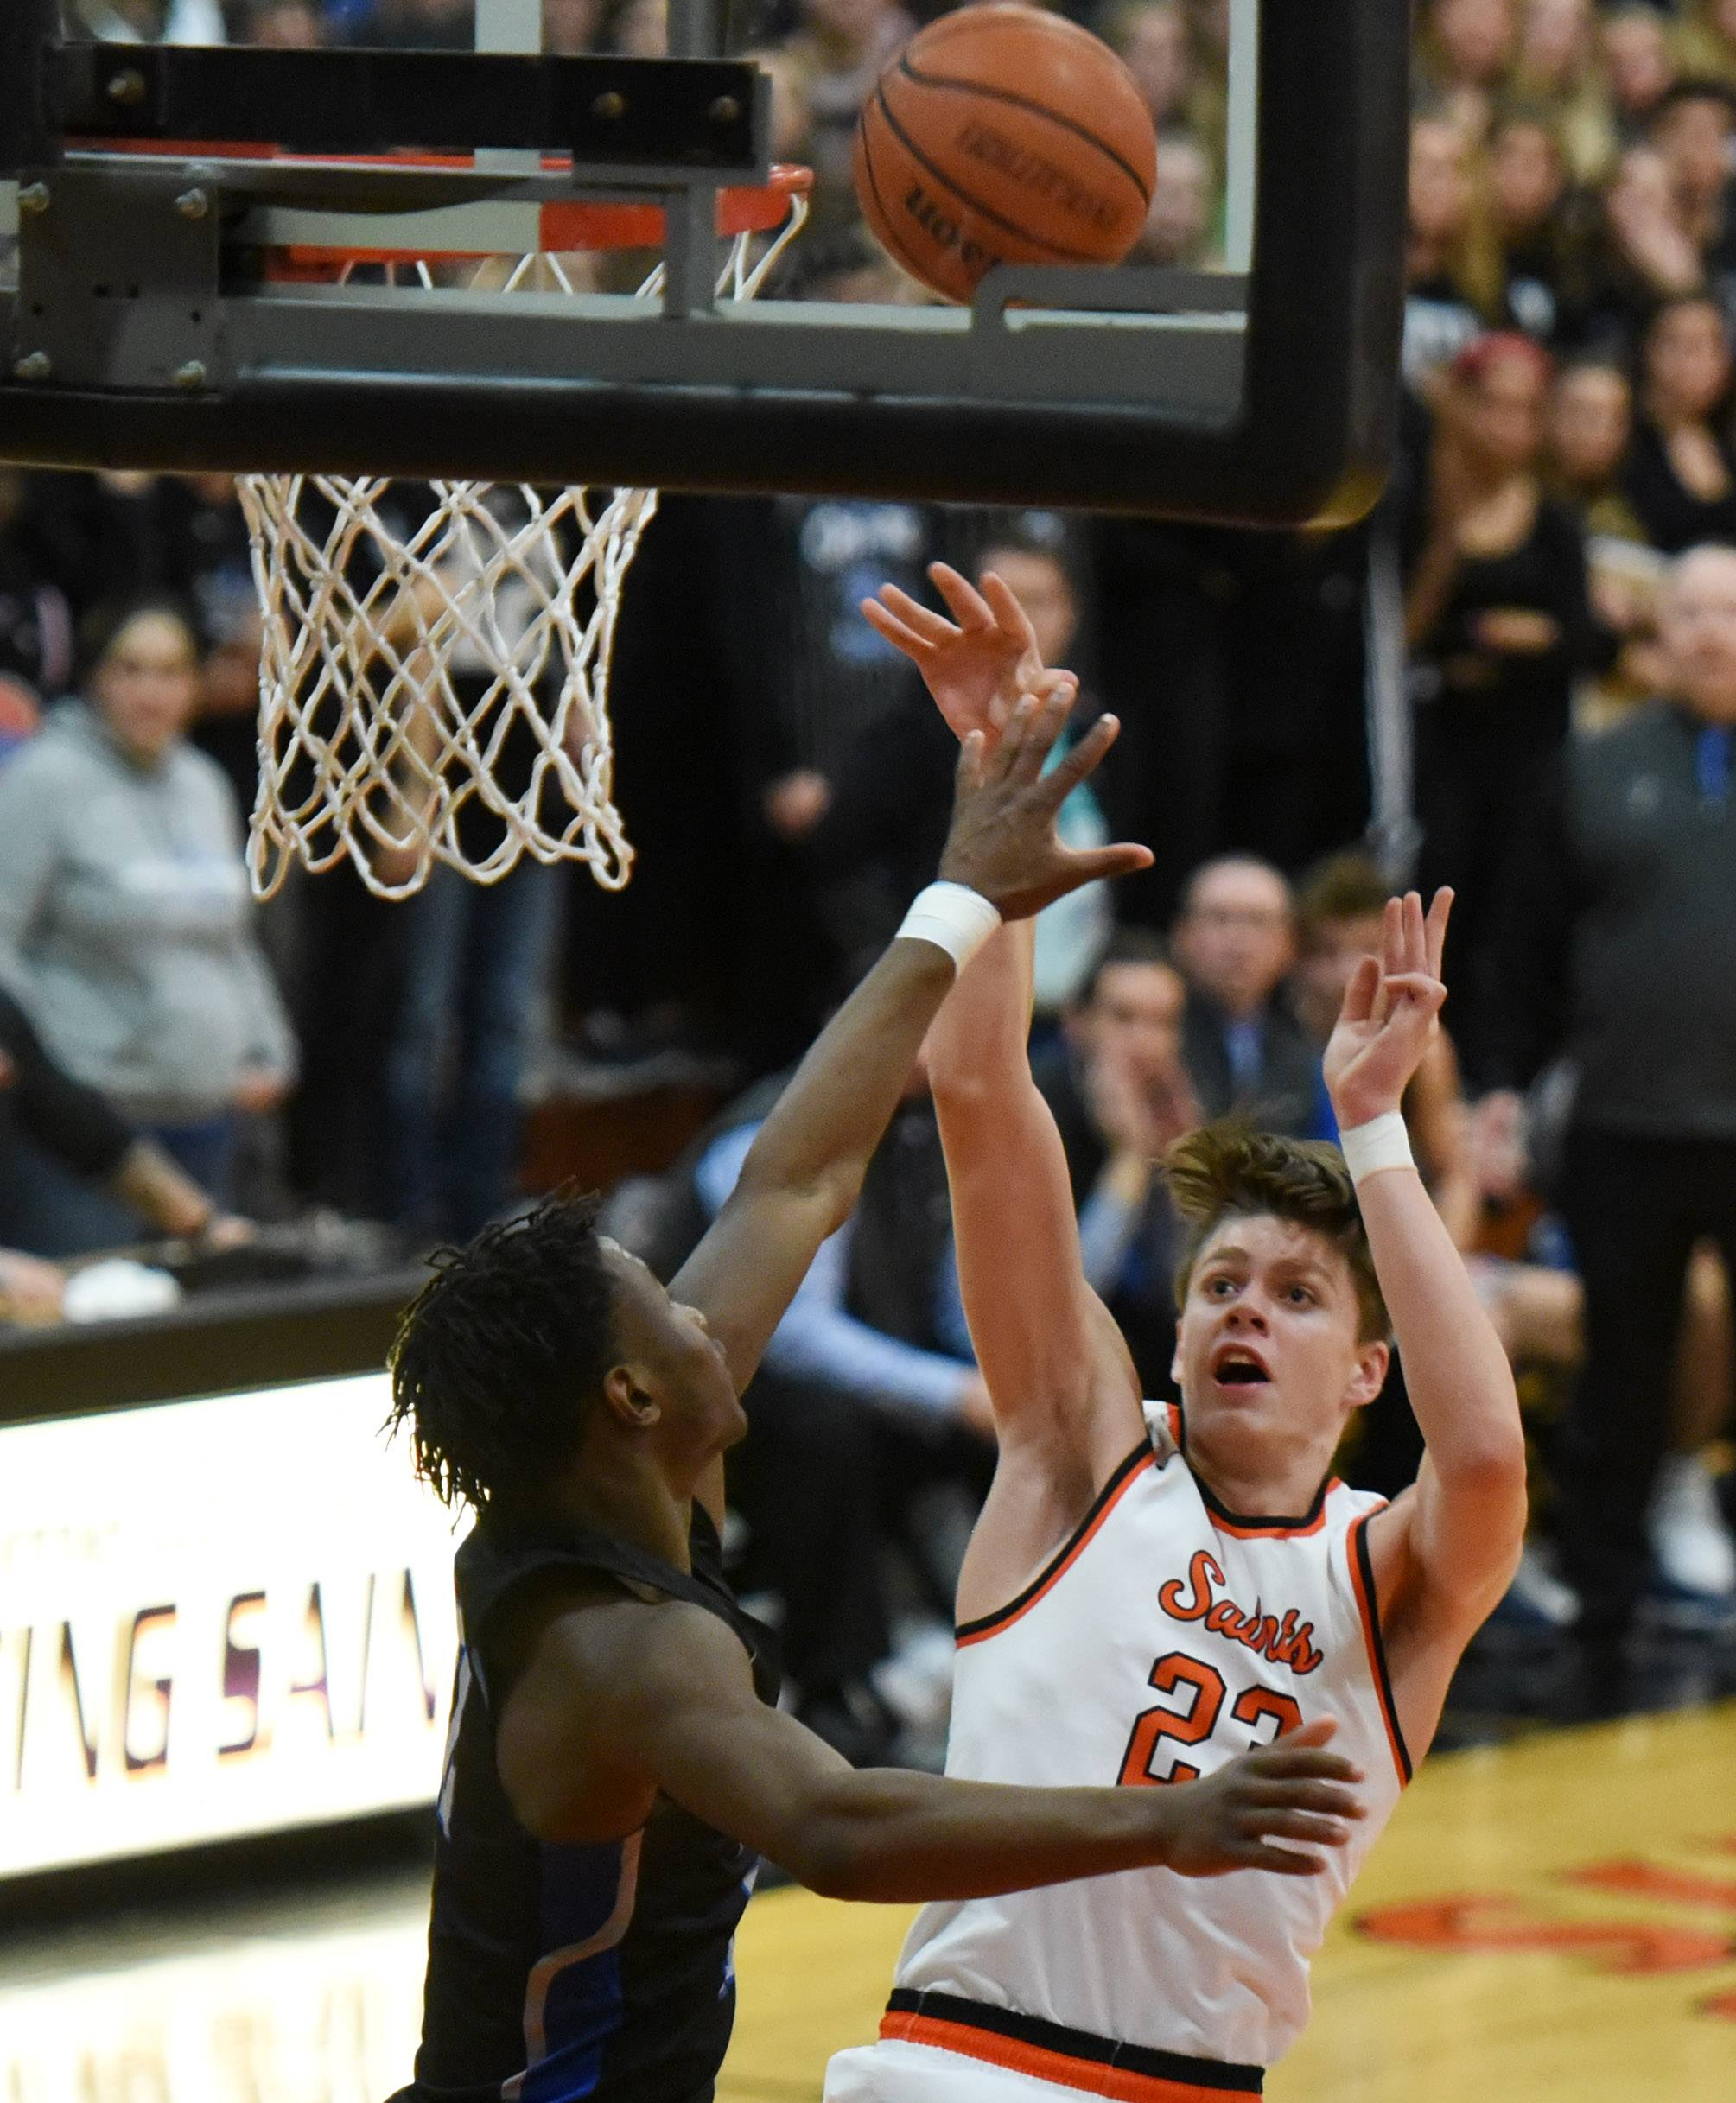 St. Charles East's Cody Mitchell puts up a shot over St. Charles North's Tyler Nubin during Friday's game at East.